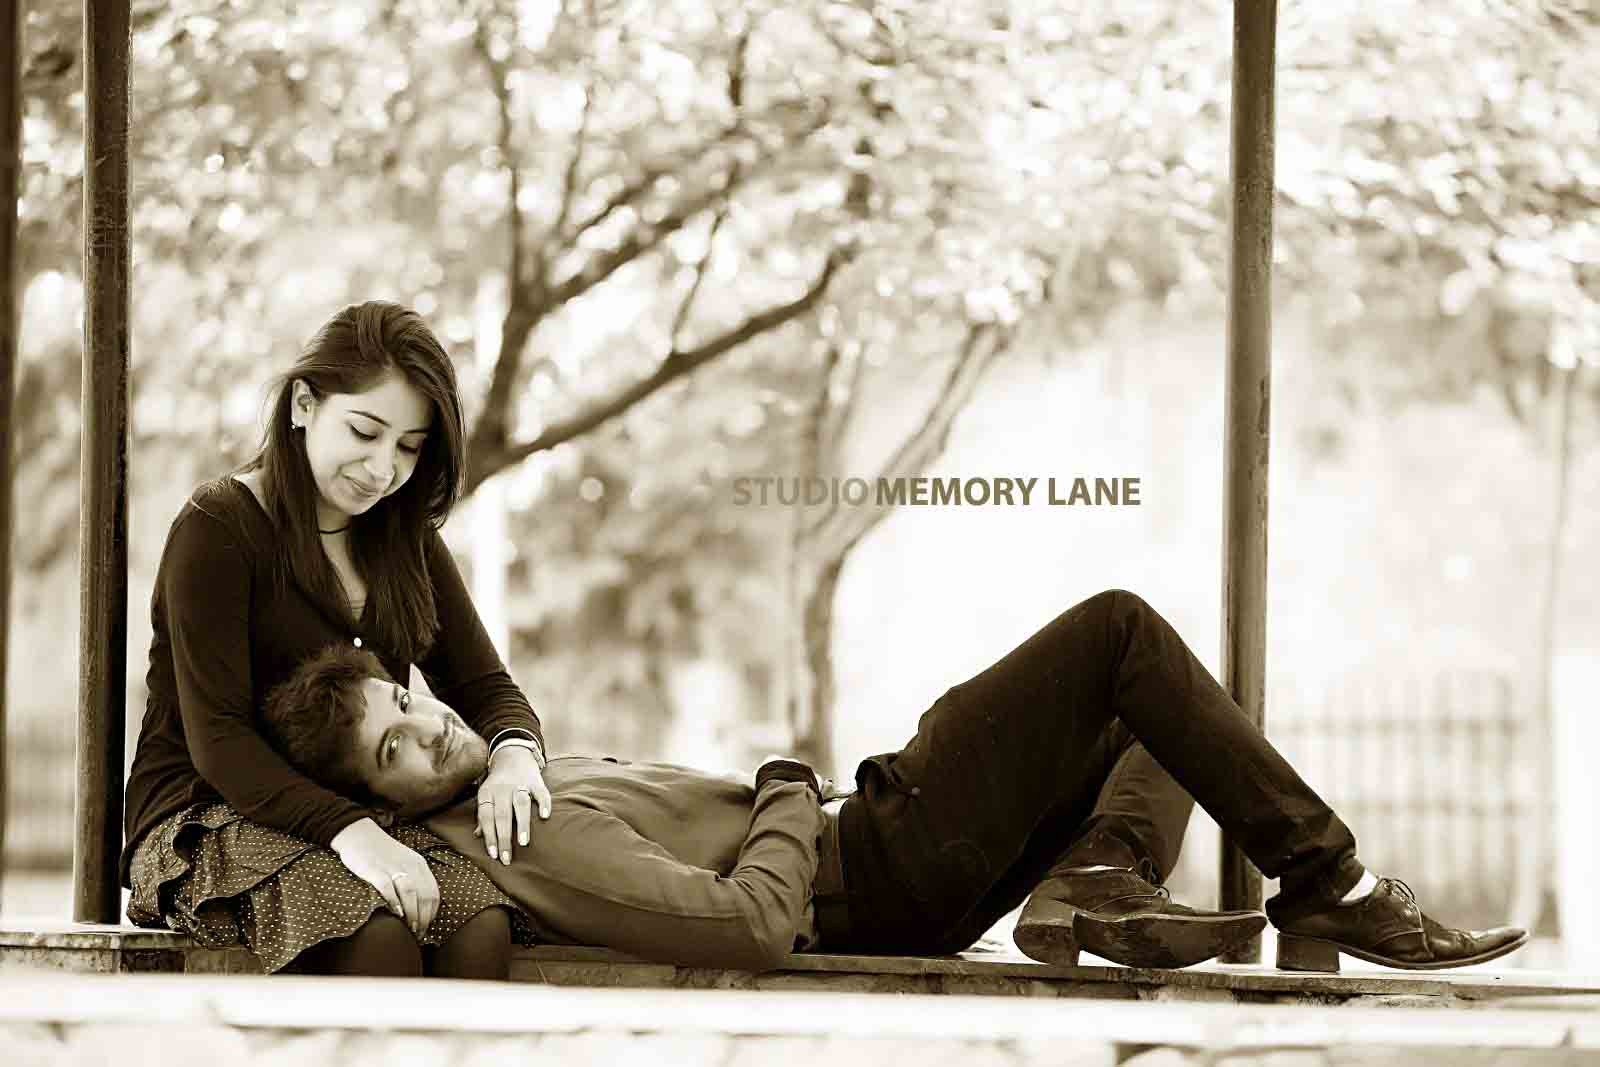 Amritsar pre-wedding photographers | Perfect frame!